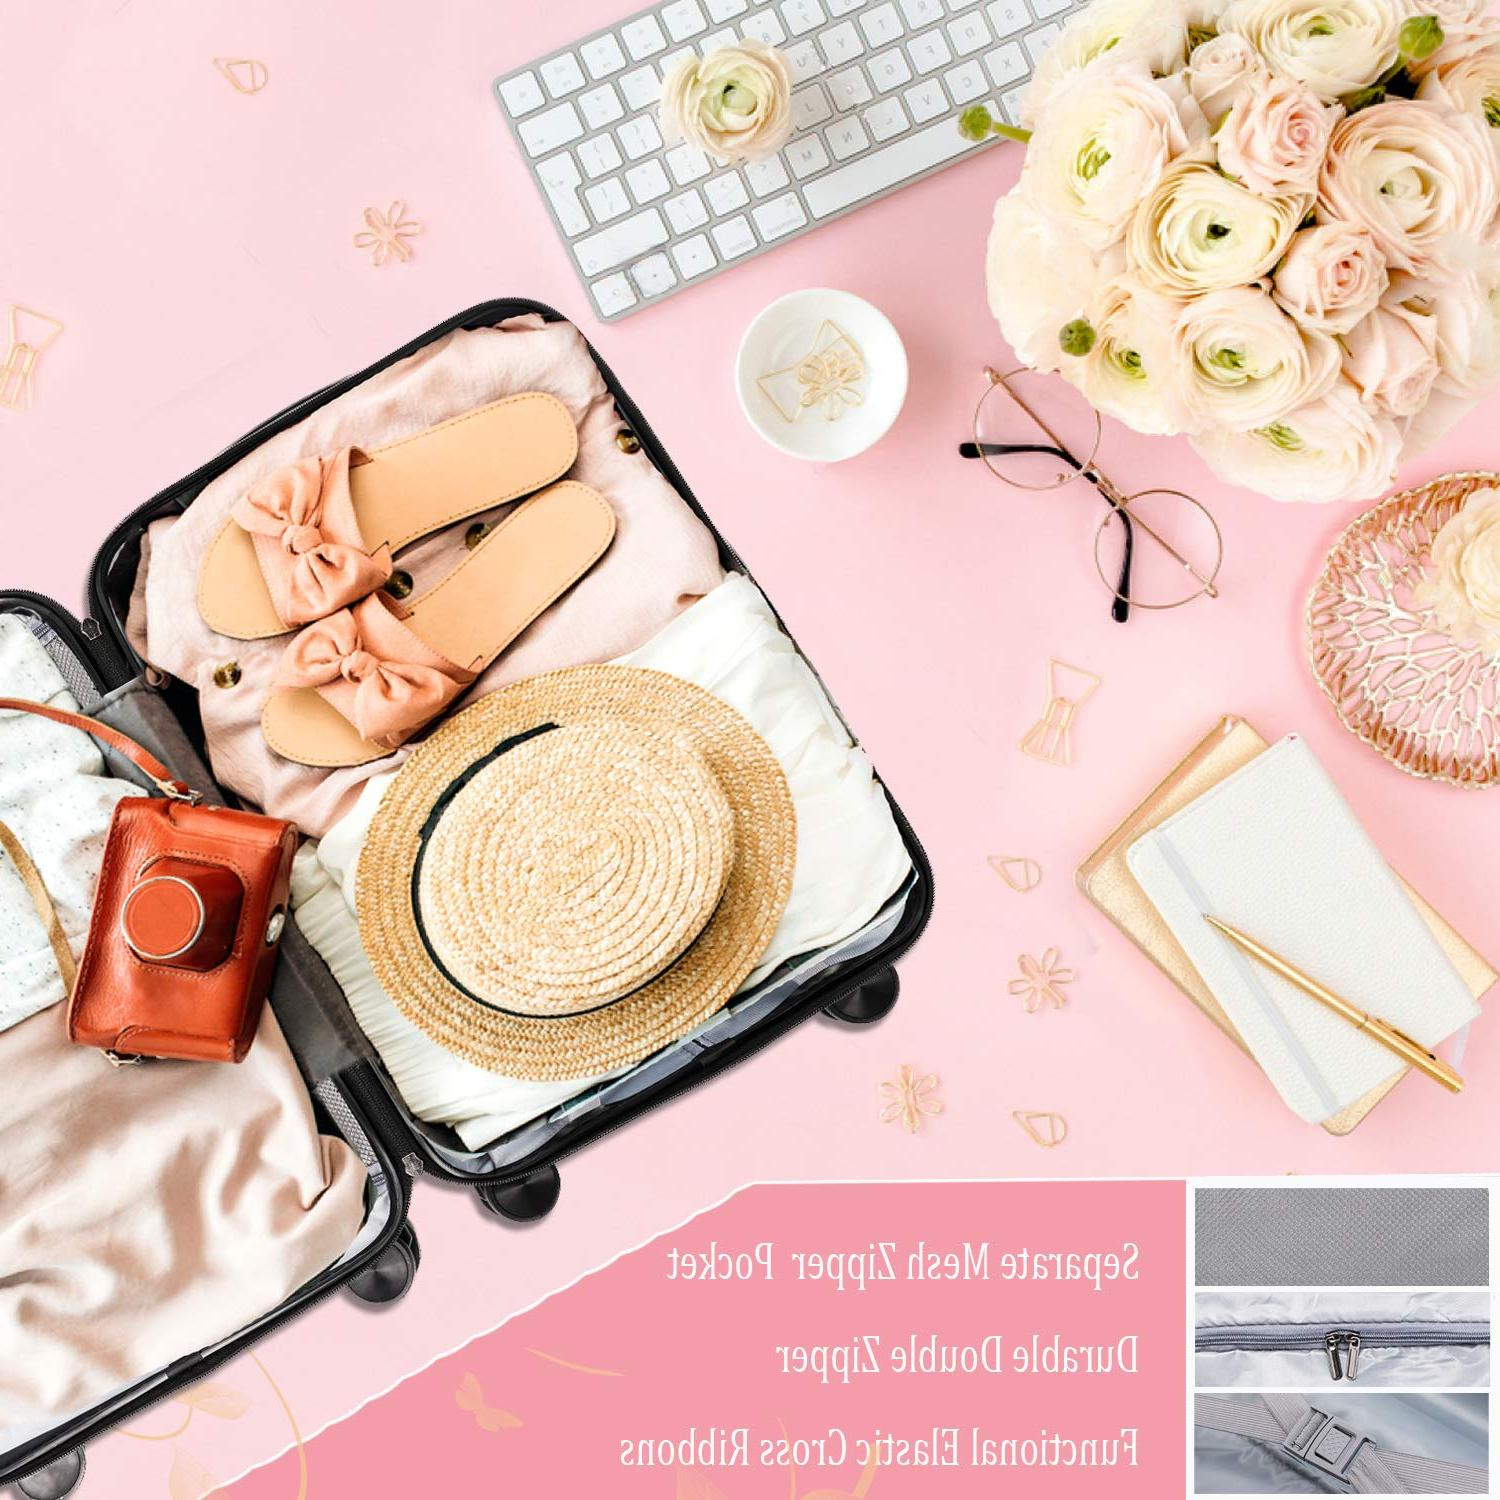 CarryOne Luggage Suitcase, Built-in